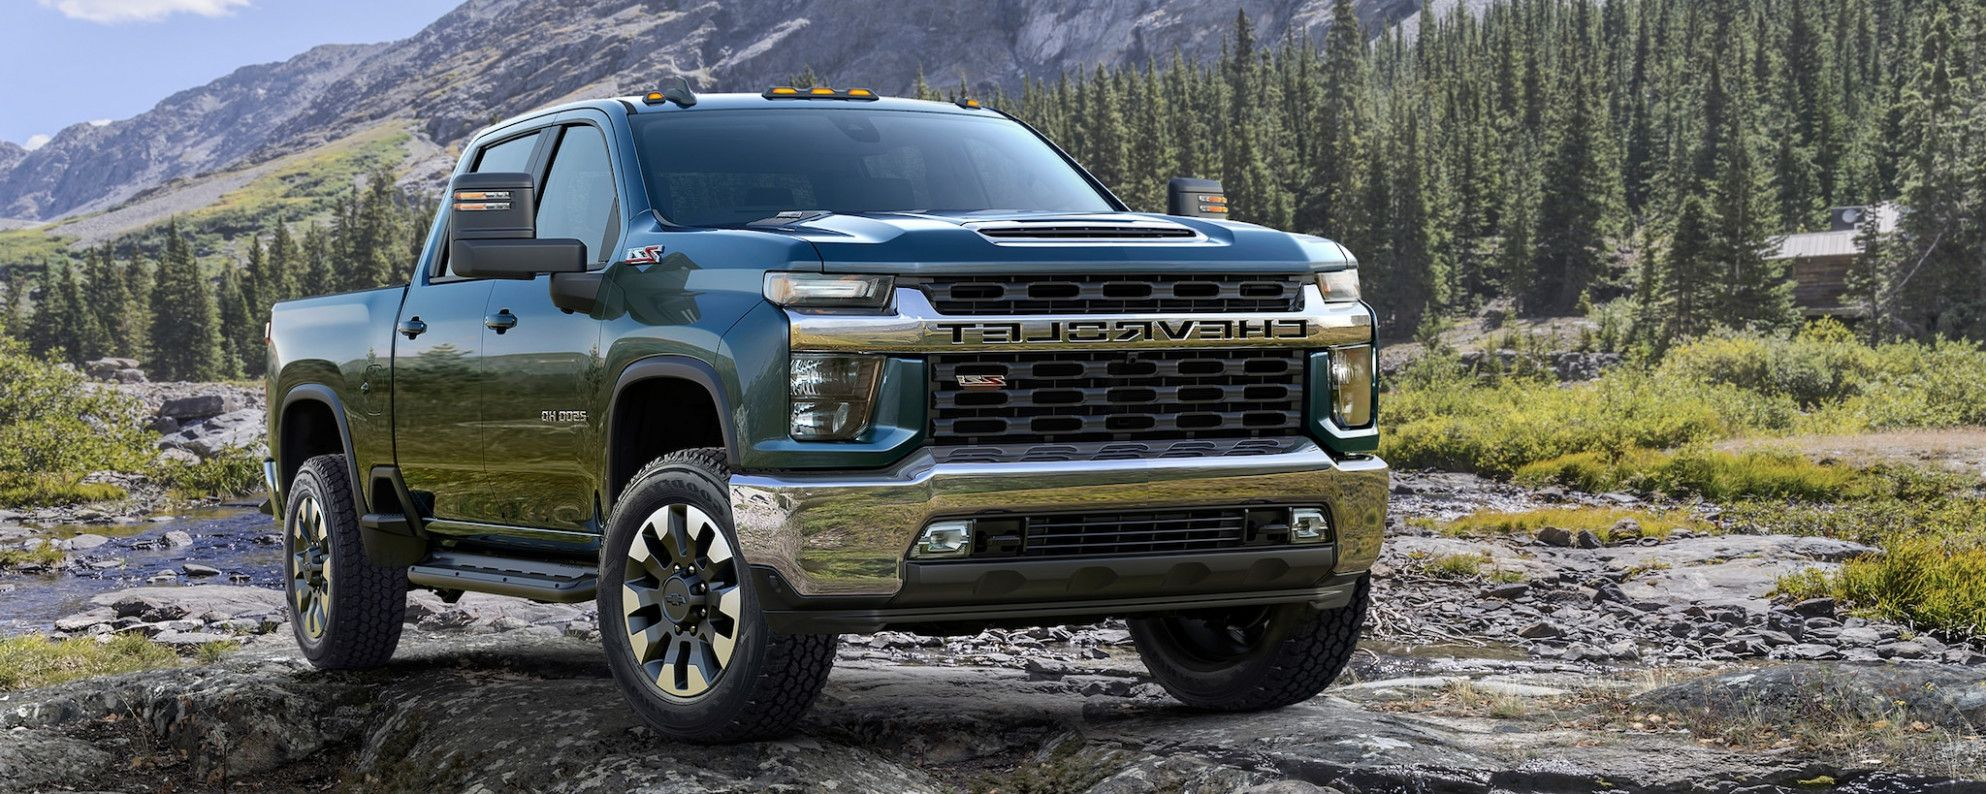 5 Unexpected Ways Chevrolet Z71 Ltz 2020 Can Make Your Life Better